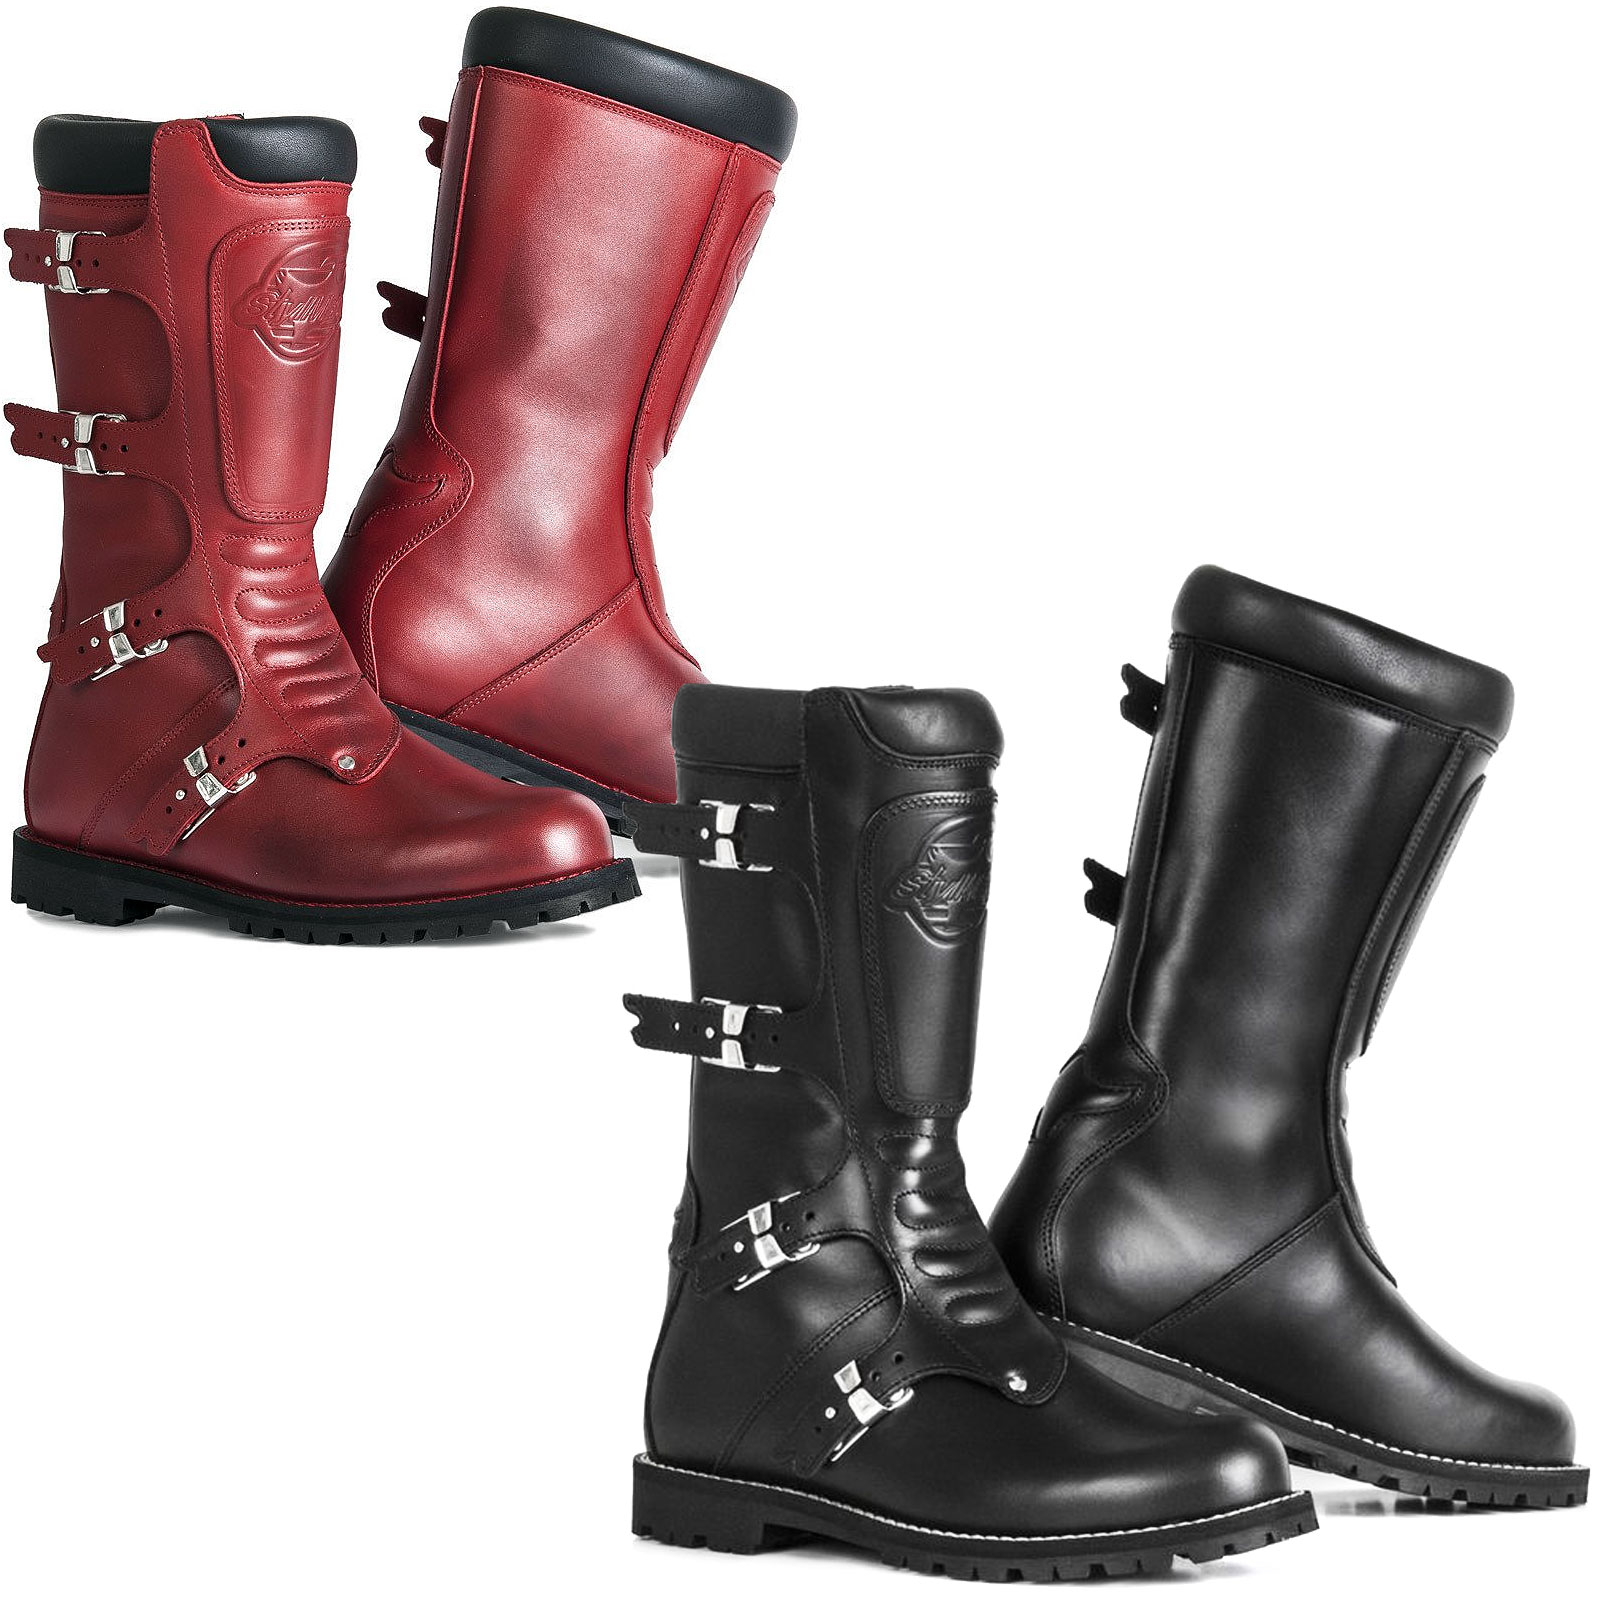 da6e8ca57d Details about Stylmartin Rocket Continental Vintage Motorcycle Bike Boots  With Buckles Red Blk